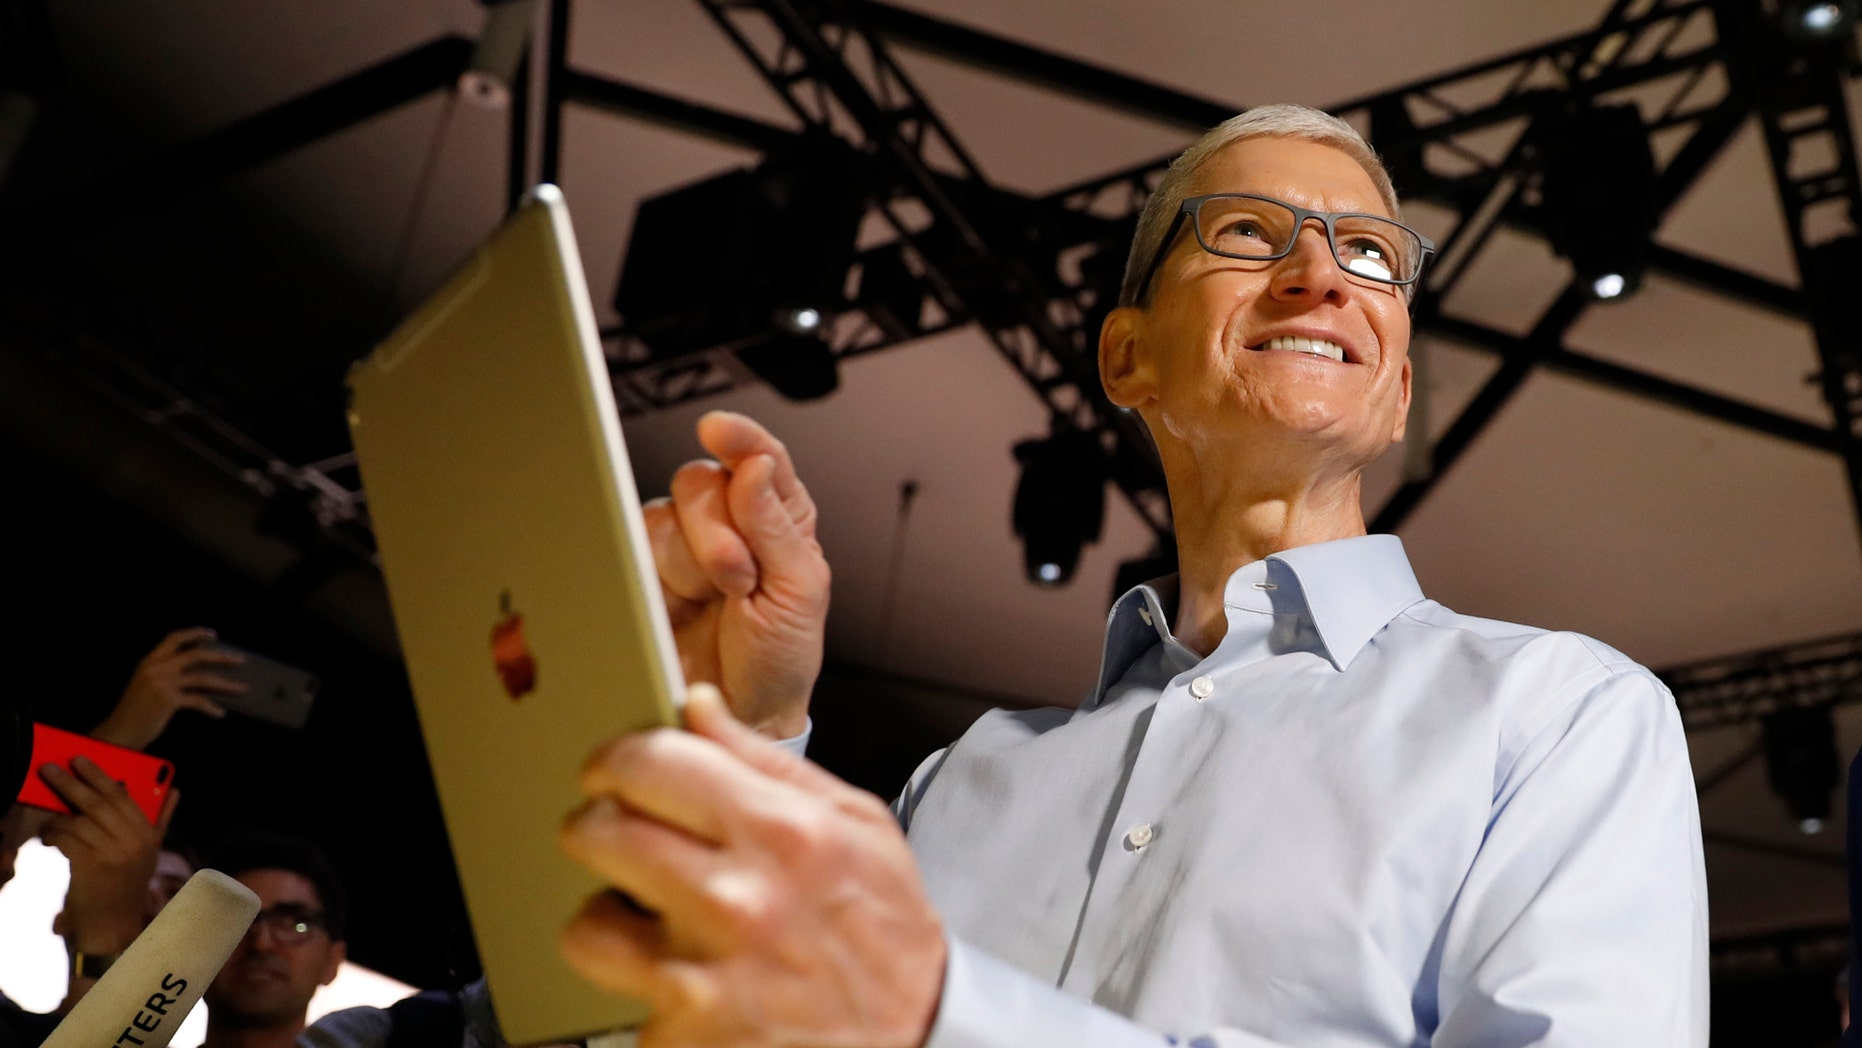 File photo: Tim Cook, CEO, holds an iPad Pro after his keynote address to Apple's annual world wide developer conference (WWDC) in San Jose, California, U.S. June 5, 2017. (REUTERS/Stephen Lam)